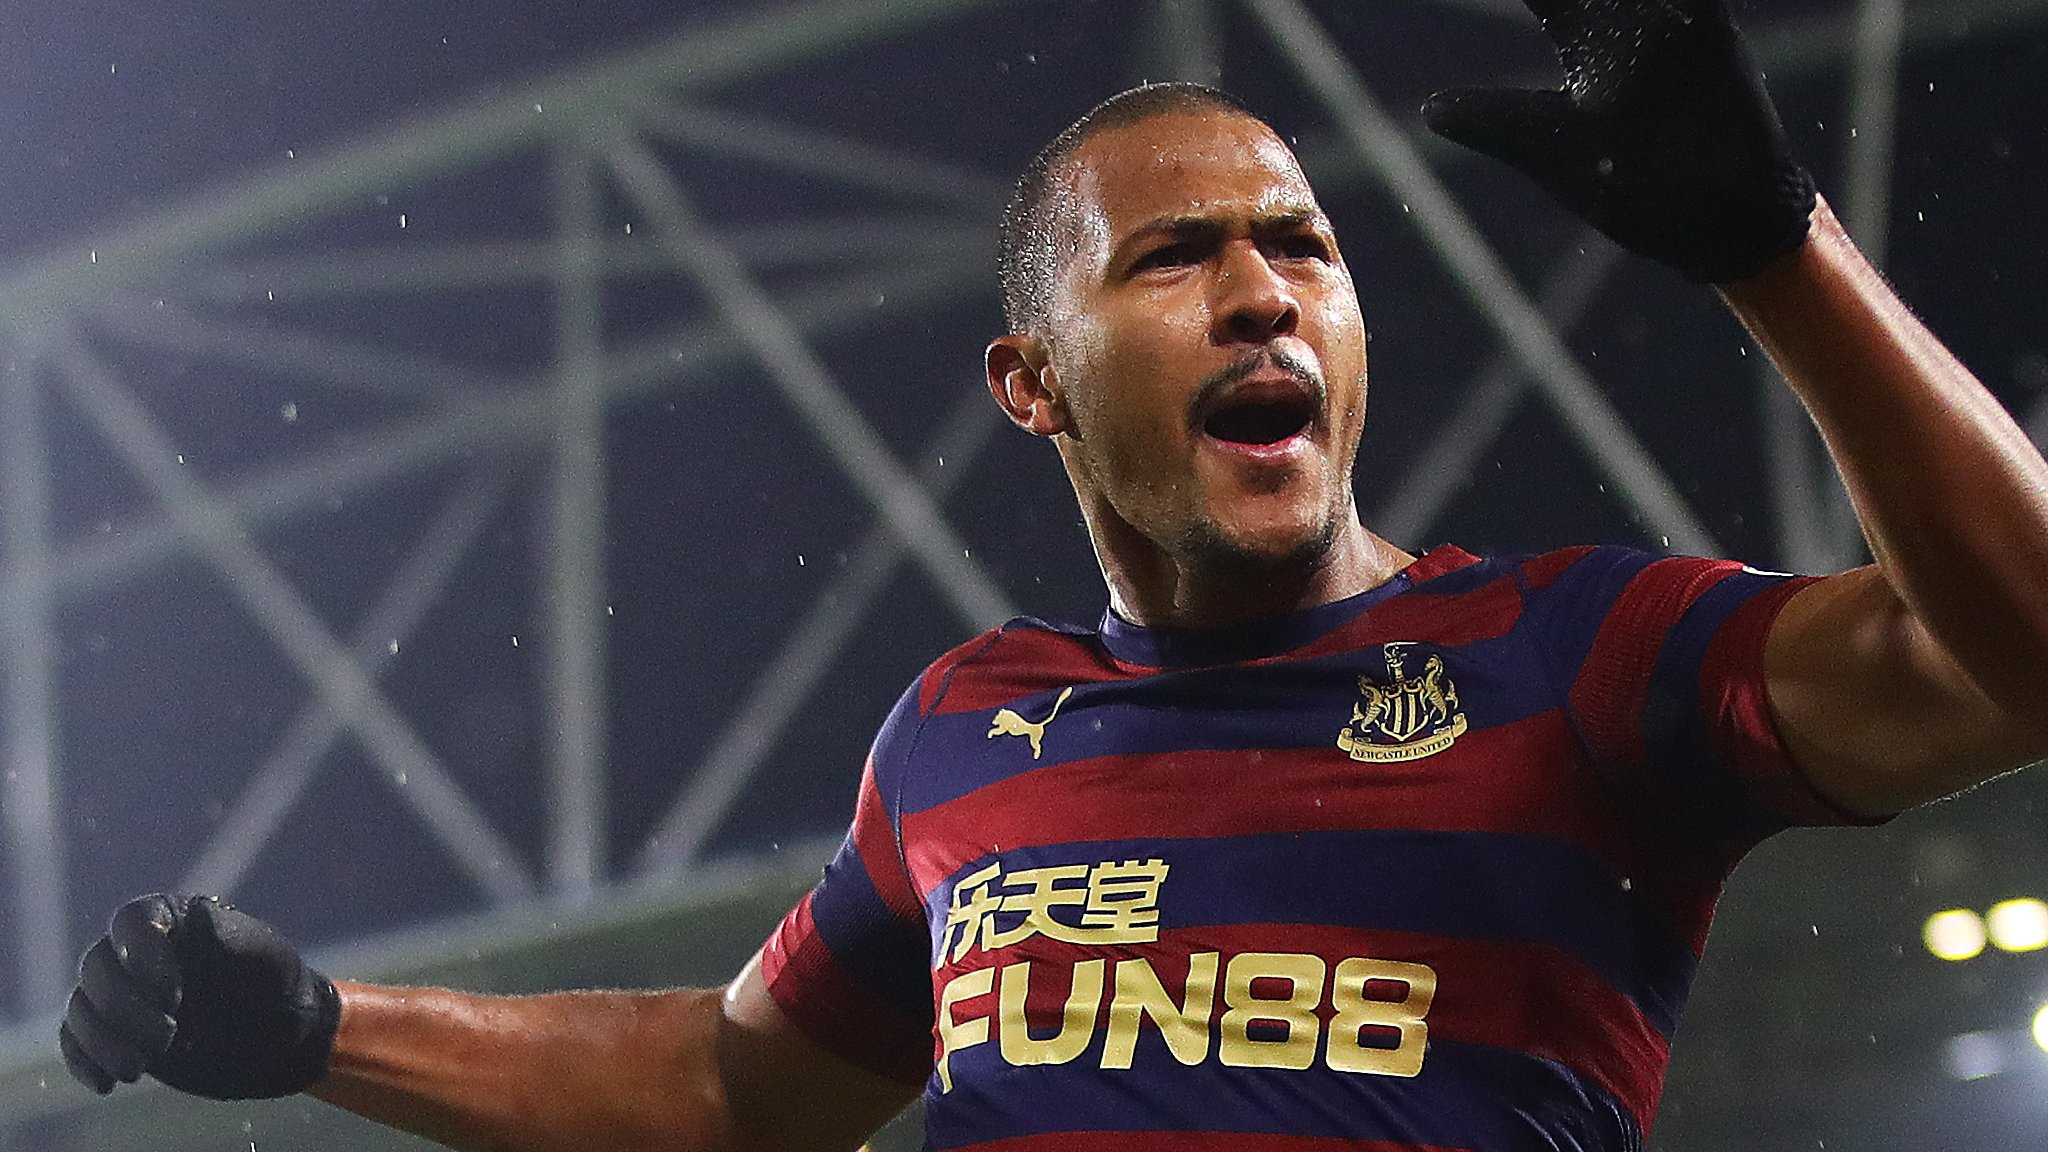 Huddersfield Town 0-1 Newcastle United: Salomon Rondon moves Newcastle clear of bottom